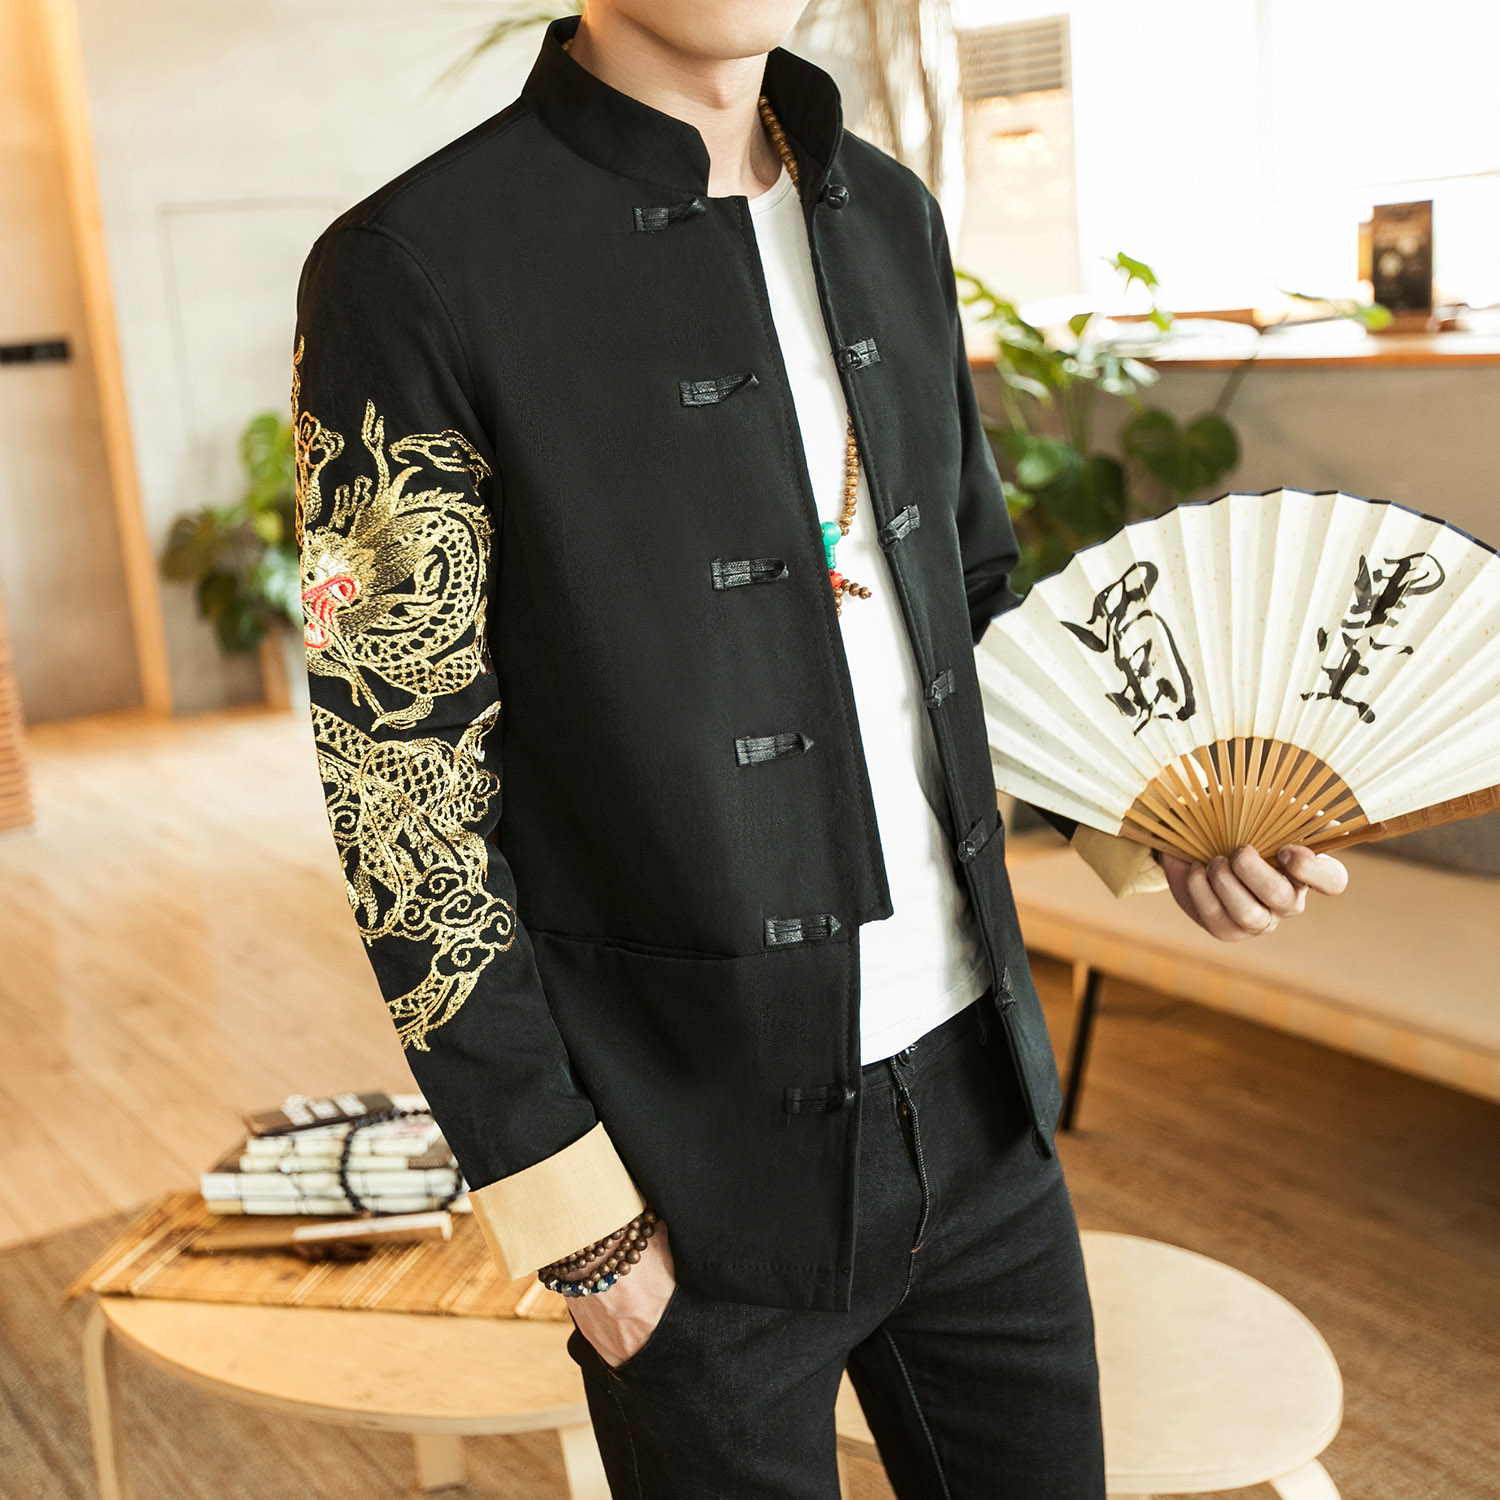 Loldeal hommes Costume Tang Costume brodé Dragon Bomber veste Tang Costume Cheongsam brodé Dragon Tang Costume Style chinois